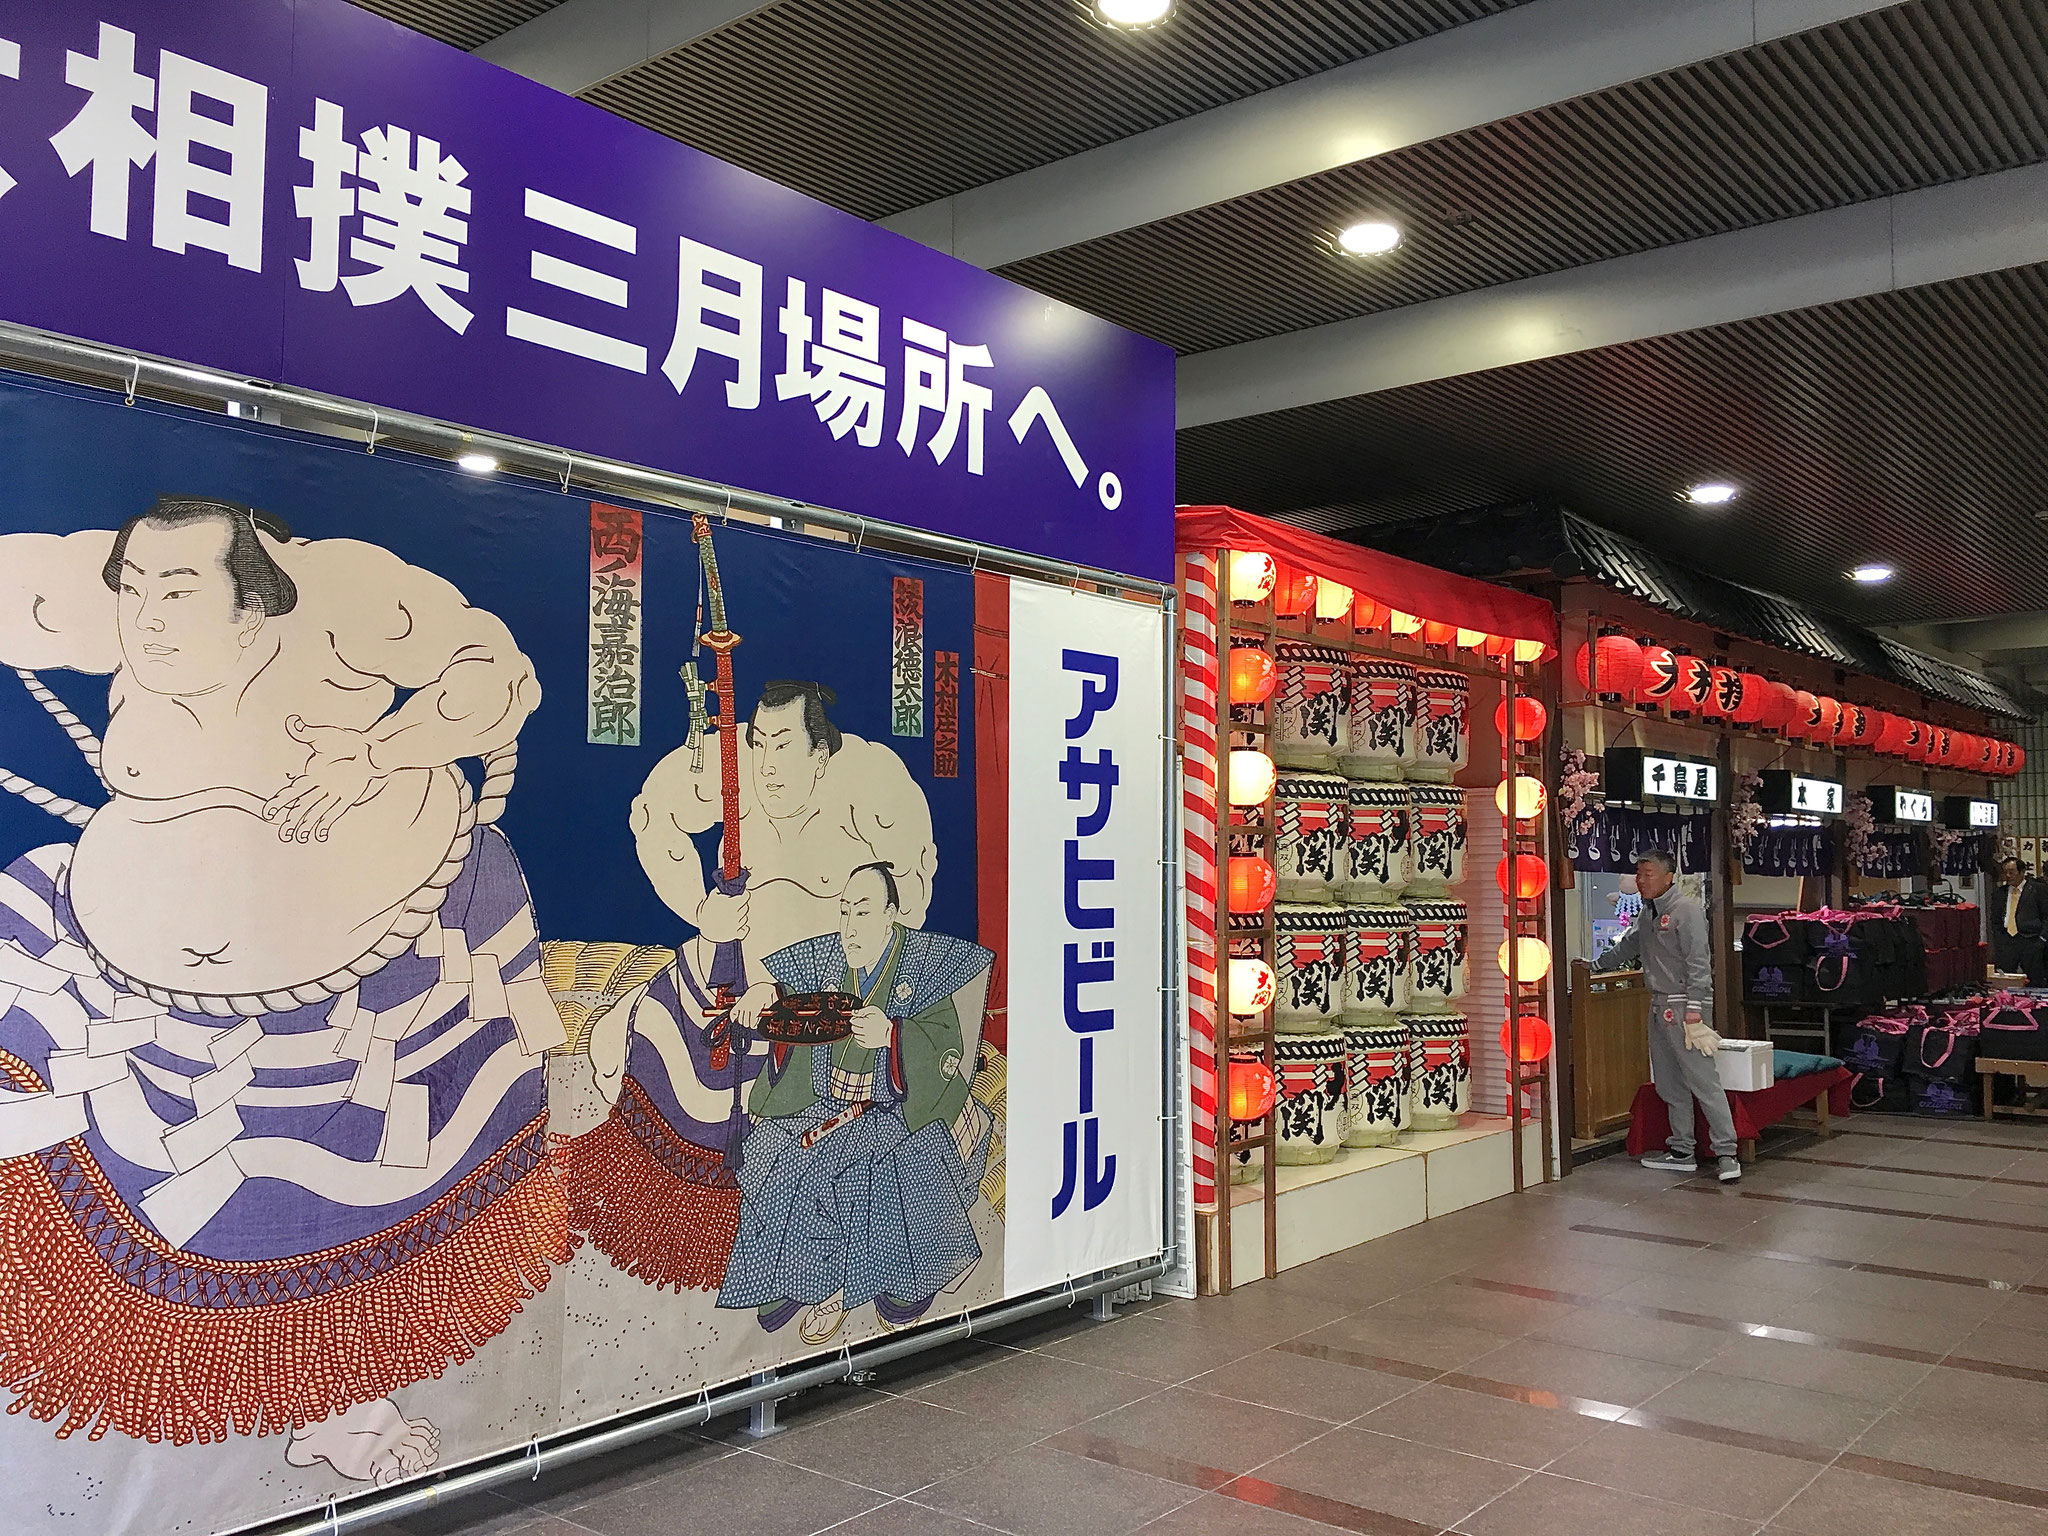 Entrance to the sumo tournament.